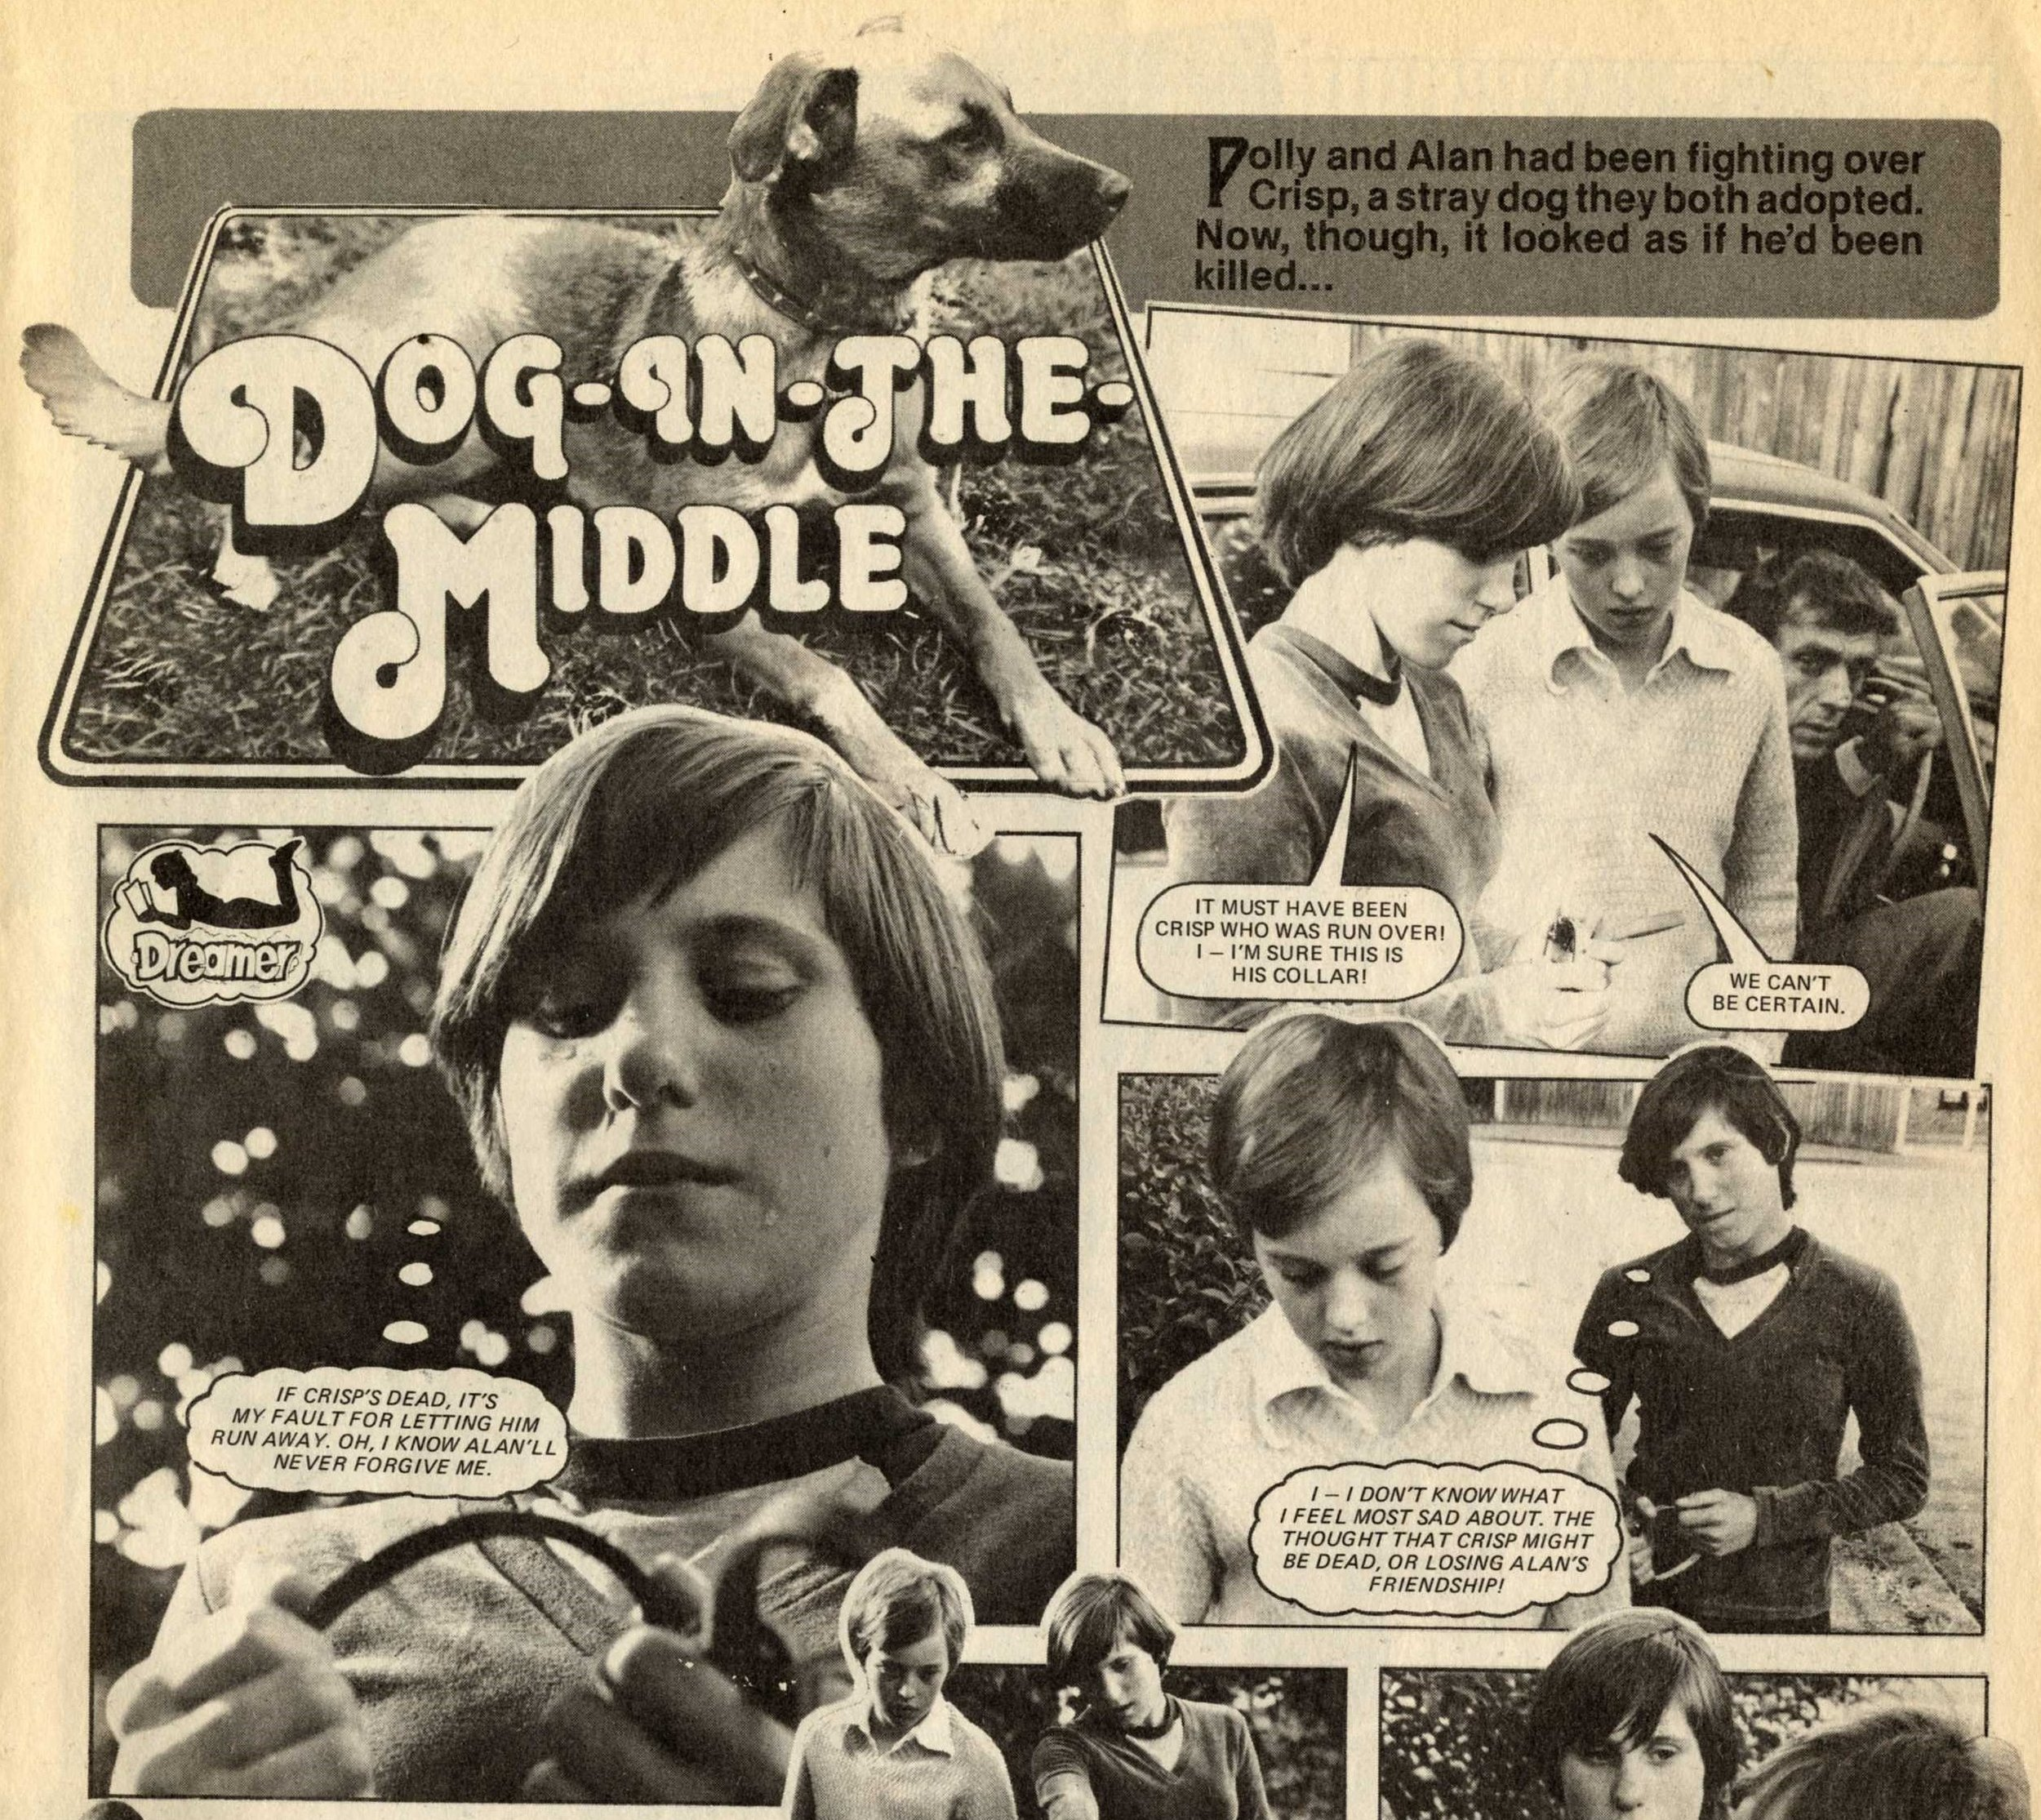 Dog-in-the-Middle (photo-story)